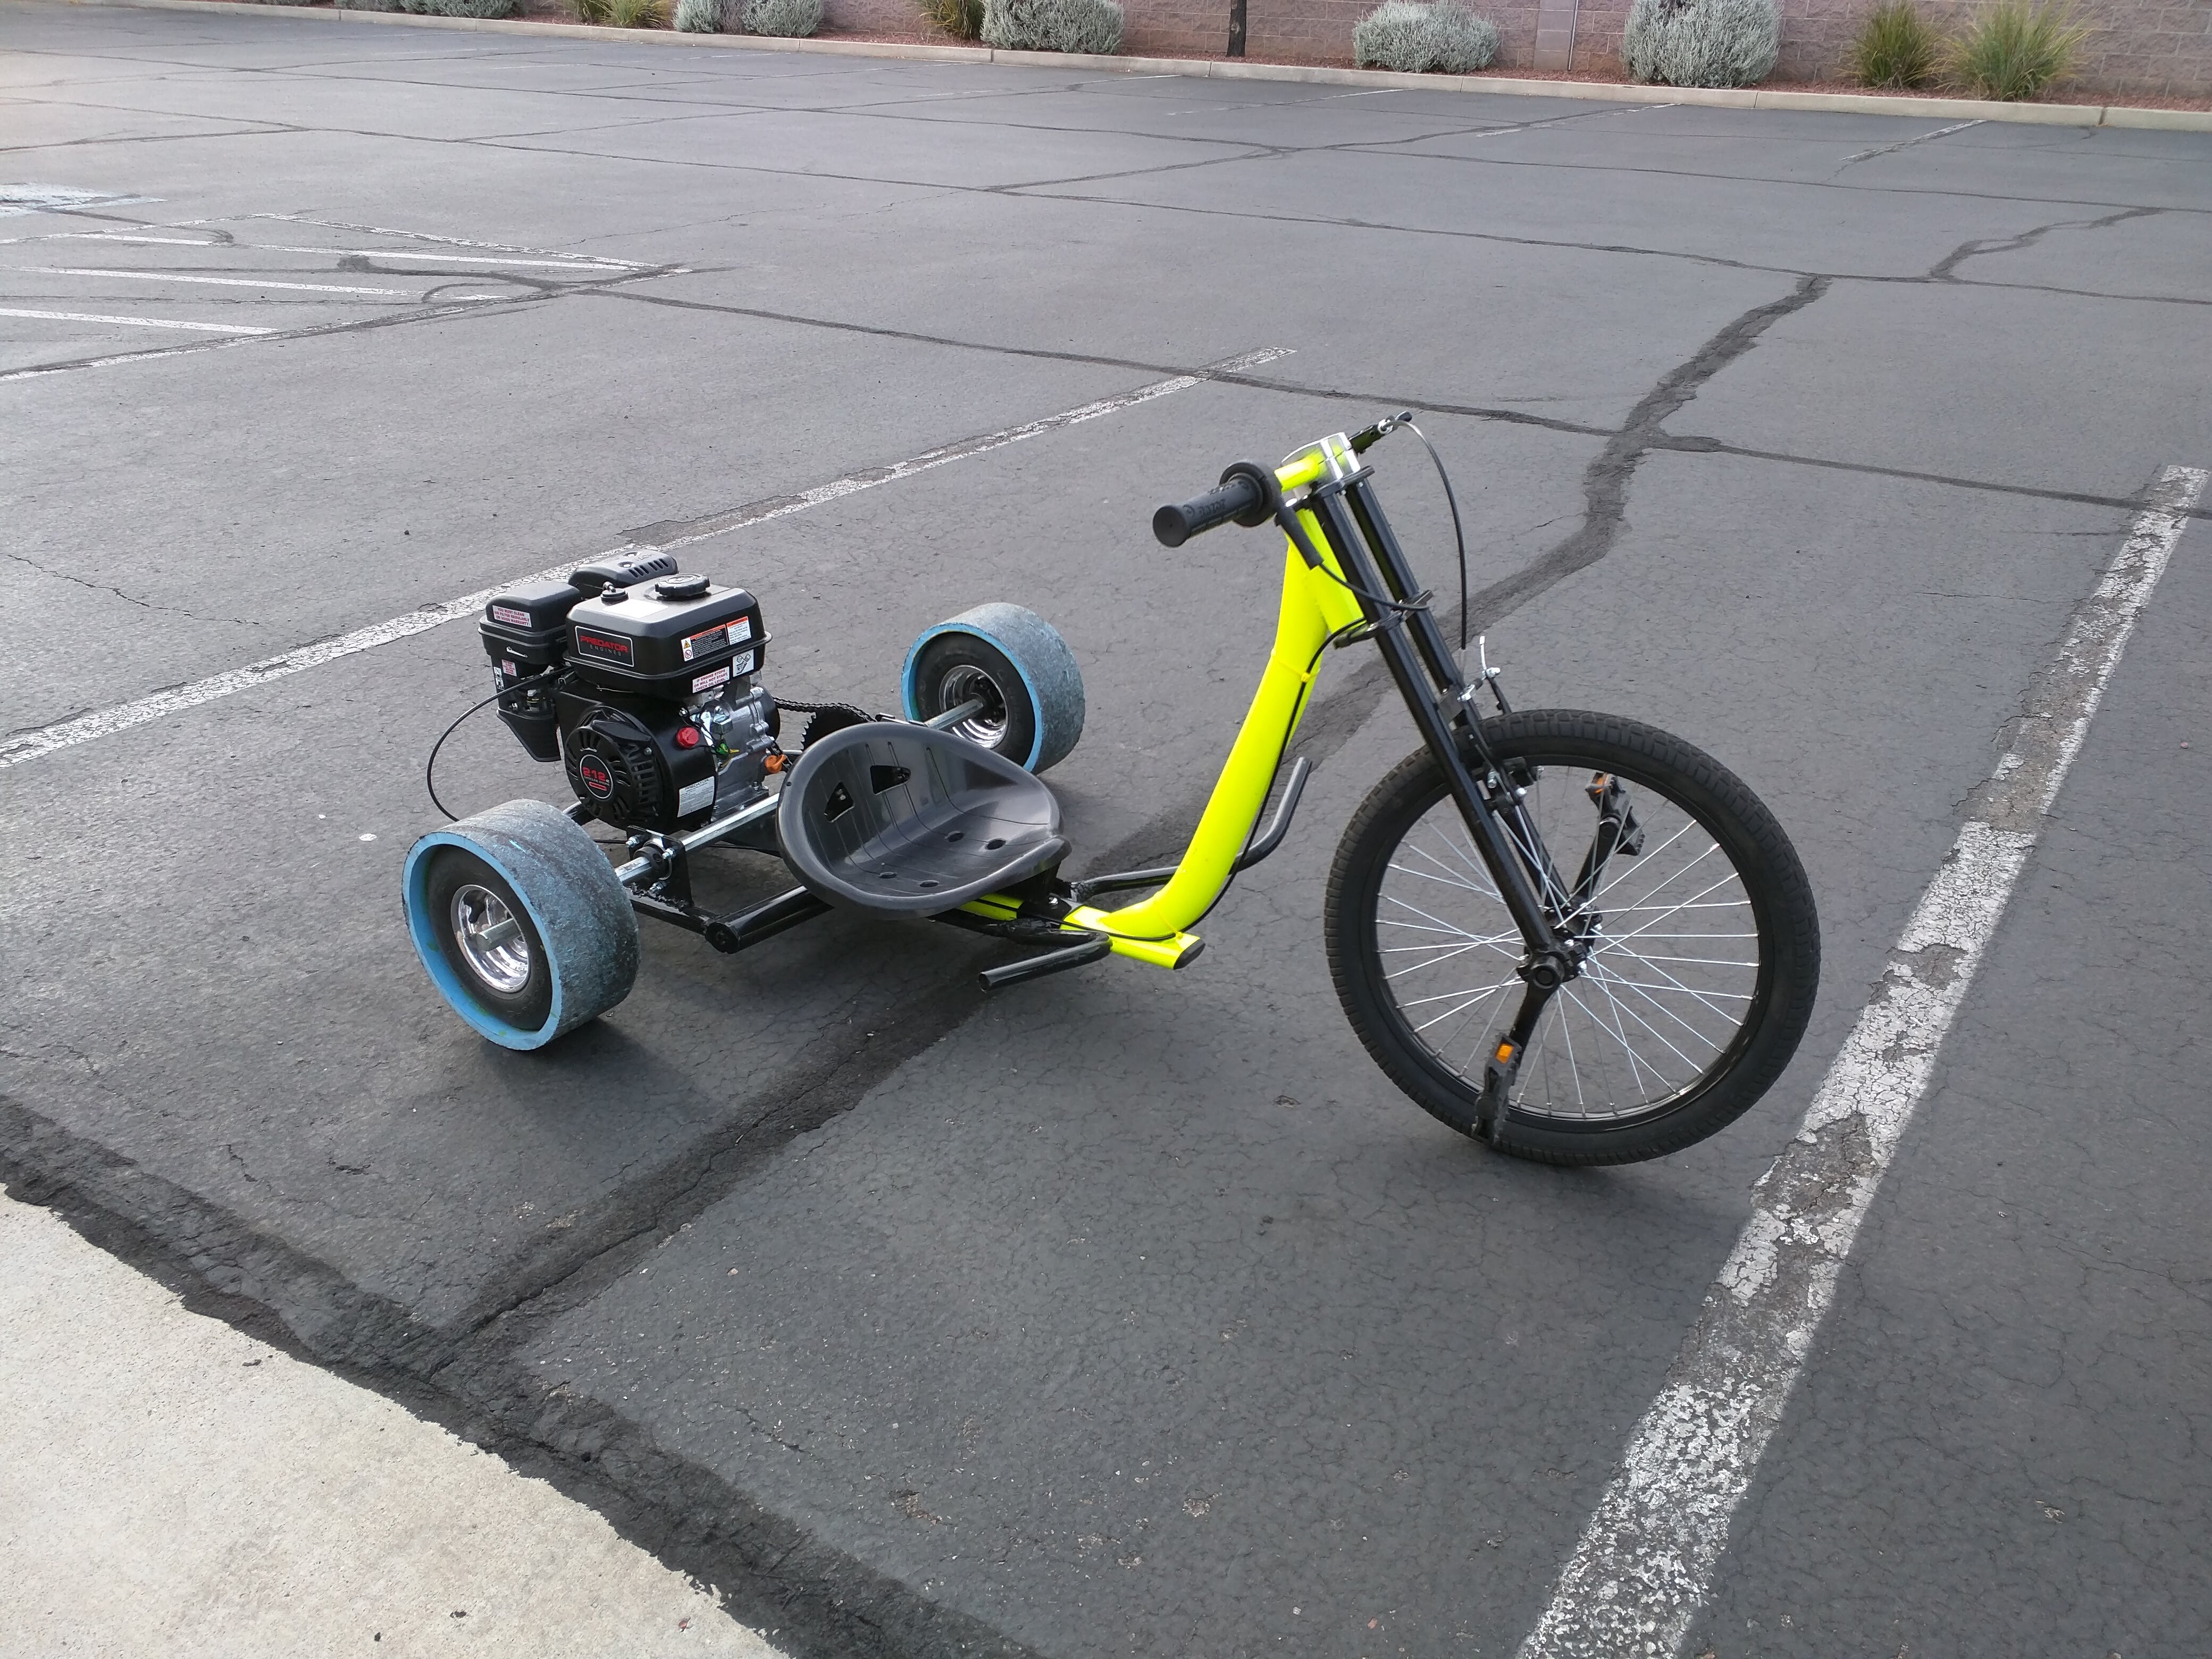 How to build a Motorized Drift Trike - Phoenix Systems